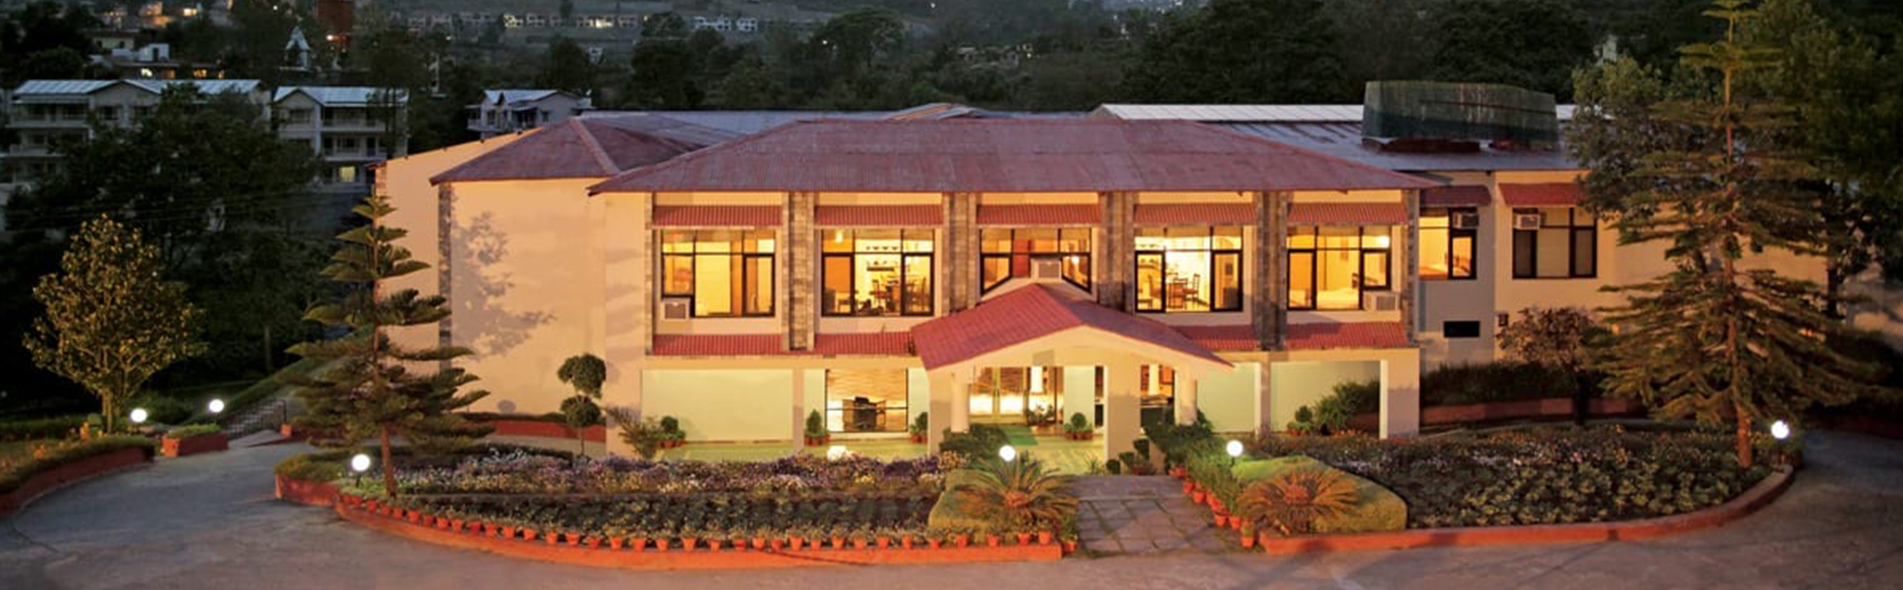 Country Inn Hotels and  Resorts, India